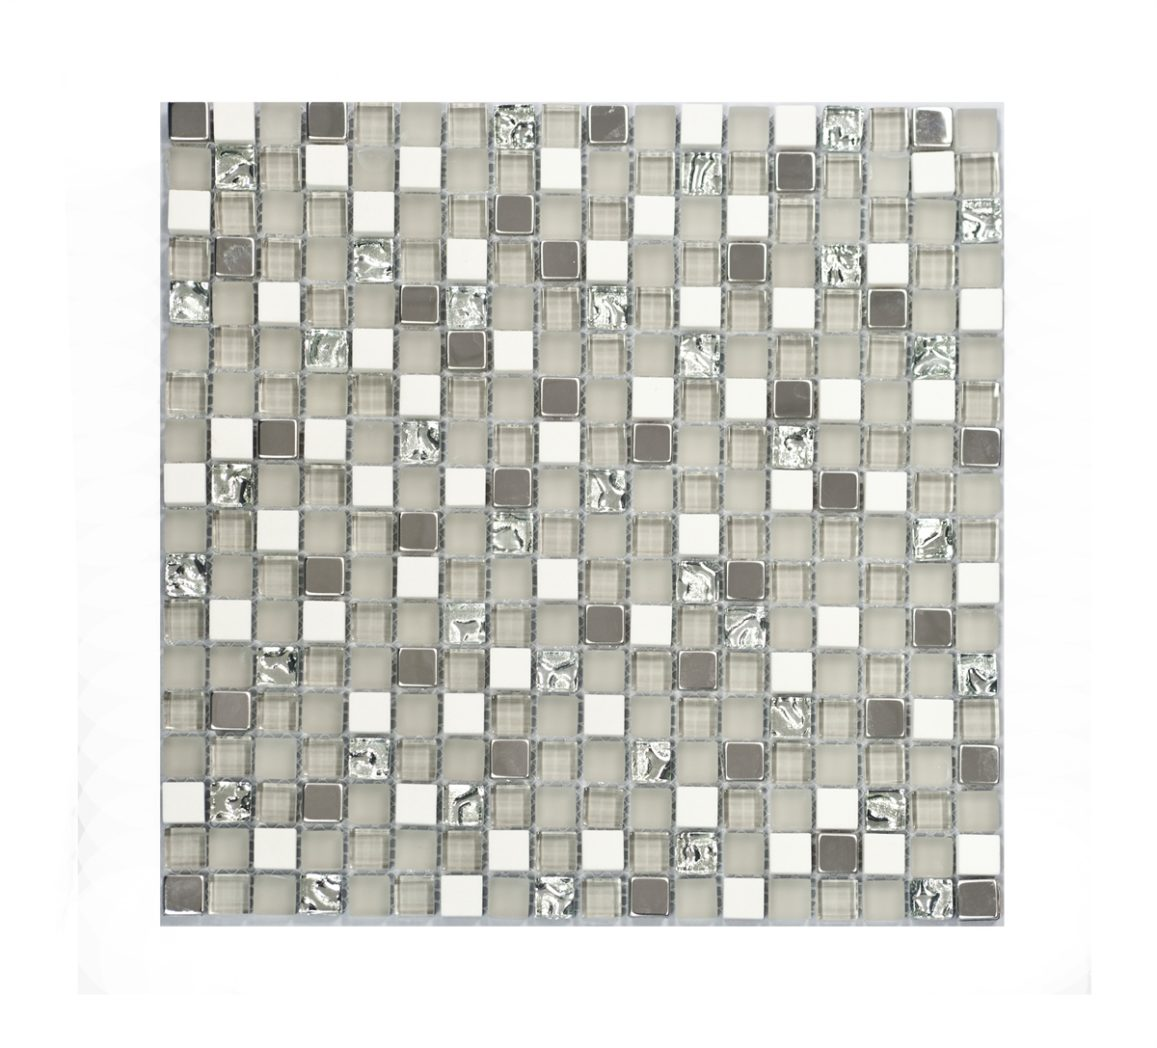 MBL028 Grau Silver with White Marble and Stainless Steel Mosaics Image